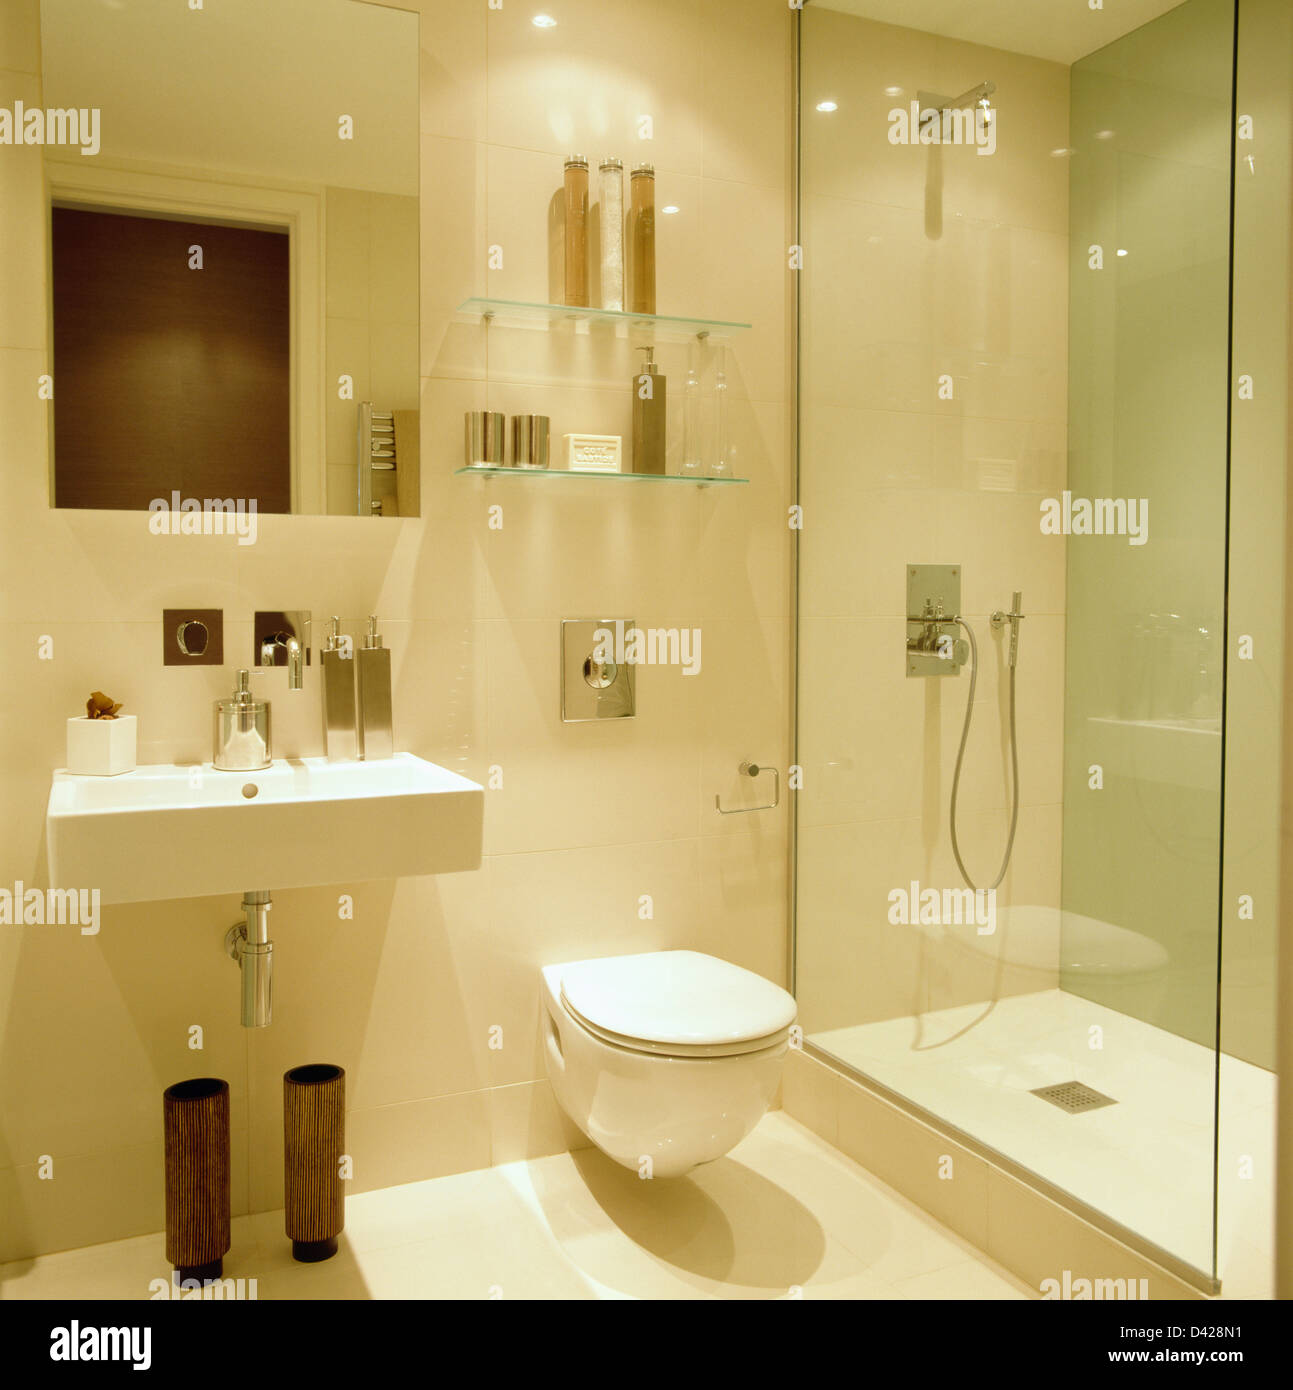 Wall Mounted Basin And Glass Shower Cabinet In Modern White Bathroom With Shelves Above Toilet